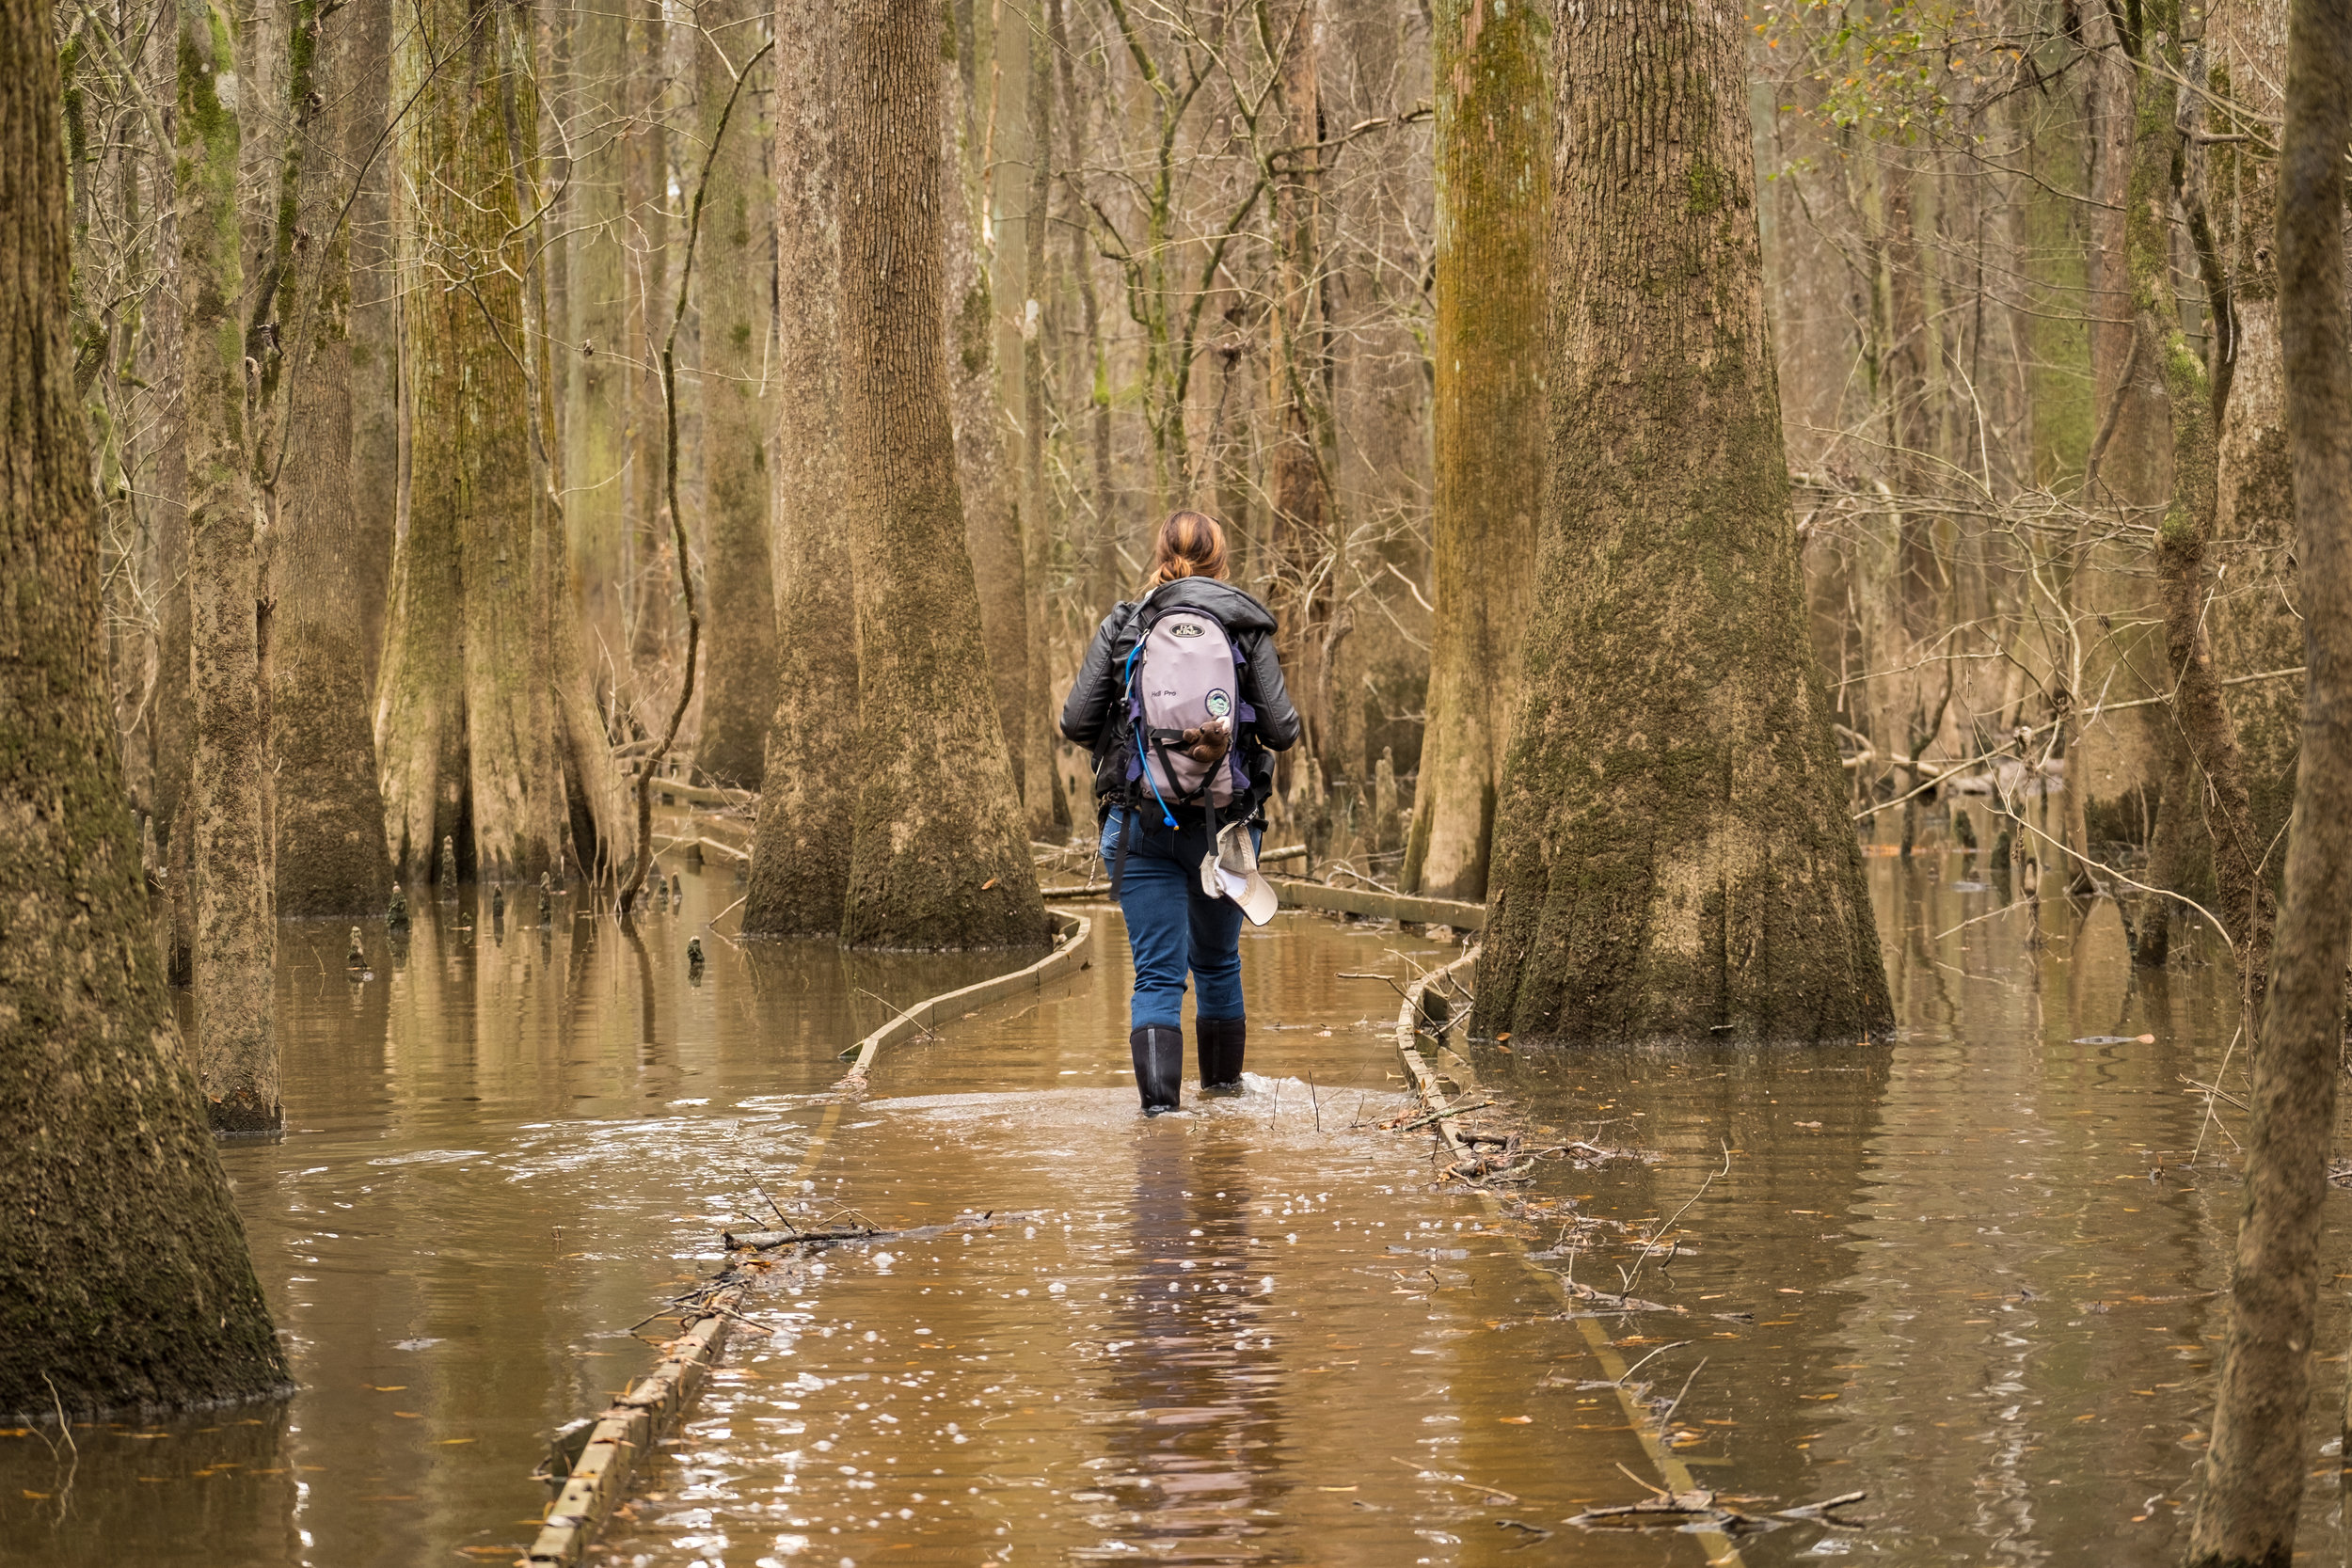 Walking through a flooded Congaree National Park in South Carolina. Credit: JONATHAN IRISH